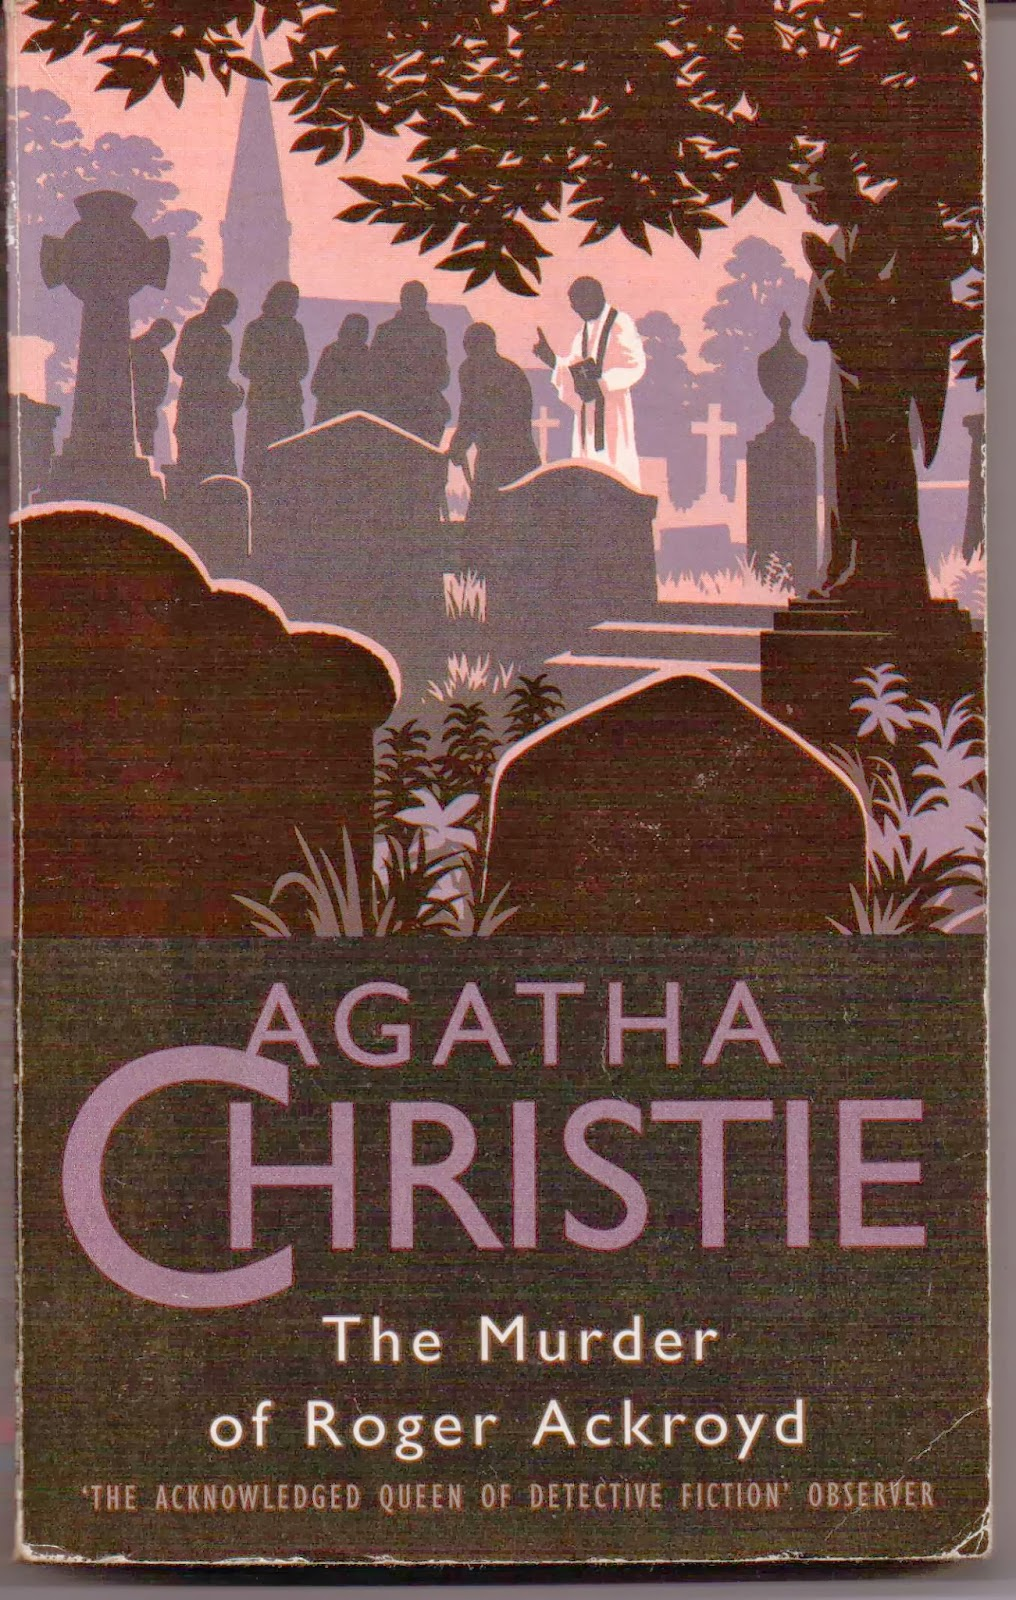 the unbelievable narrator in the murder of roger ackroyd a novel by agatha christie The unbelievable narrator in the murder of roger ackroyd, a novel by agatha christie pages 2 words 344 view full essay more essays like this.